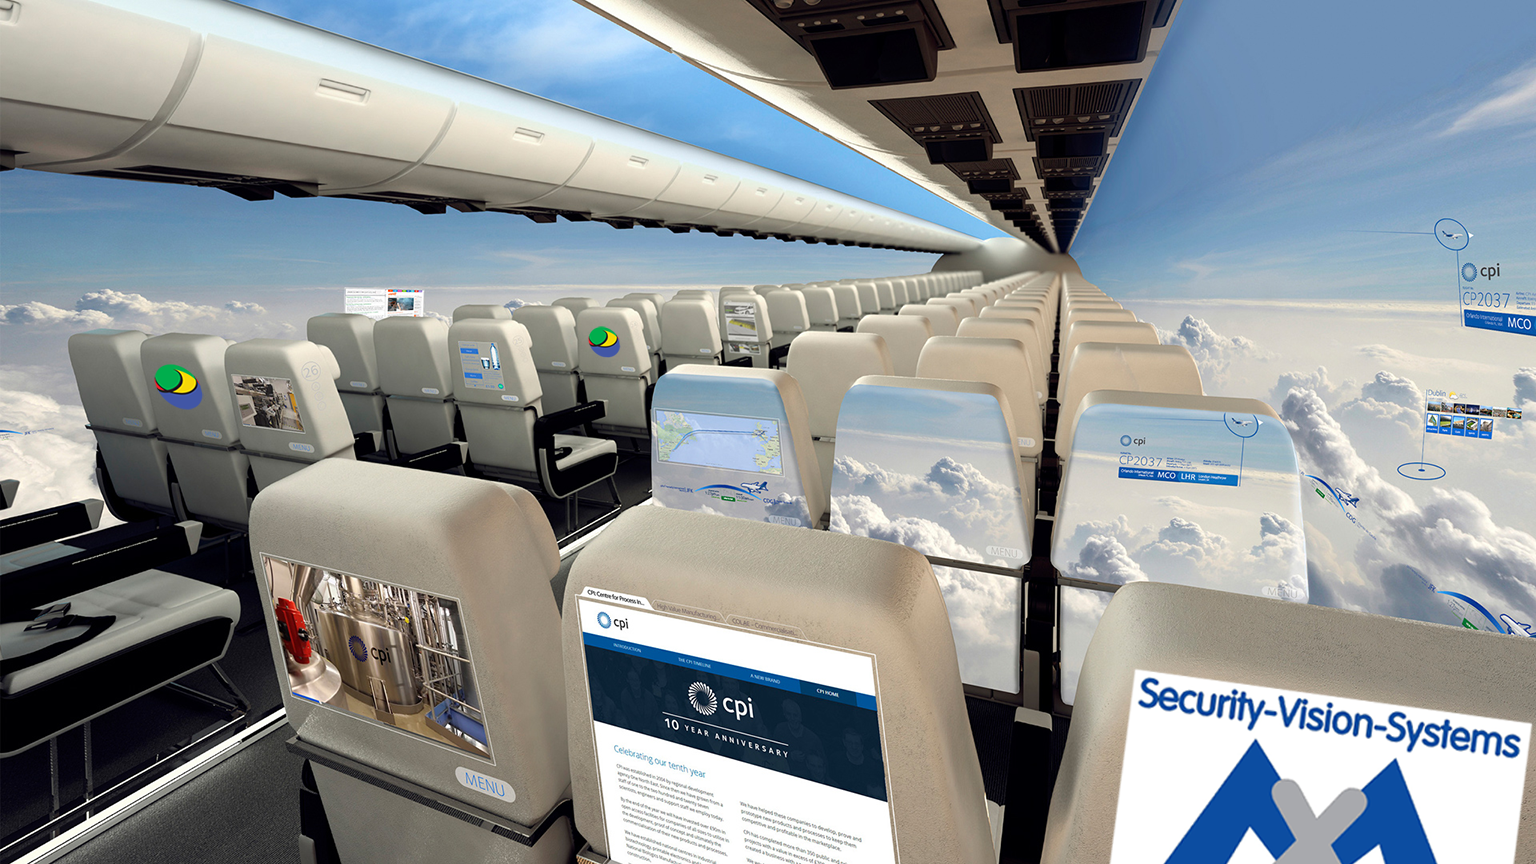 3037867-poster-p-1-this-windowless-plane-has-panoramic-views-and-a-lower-carbon-footprint1